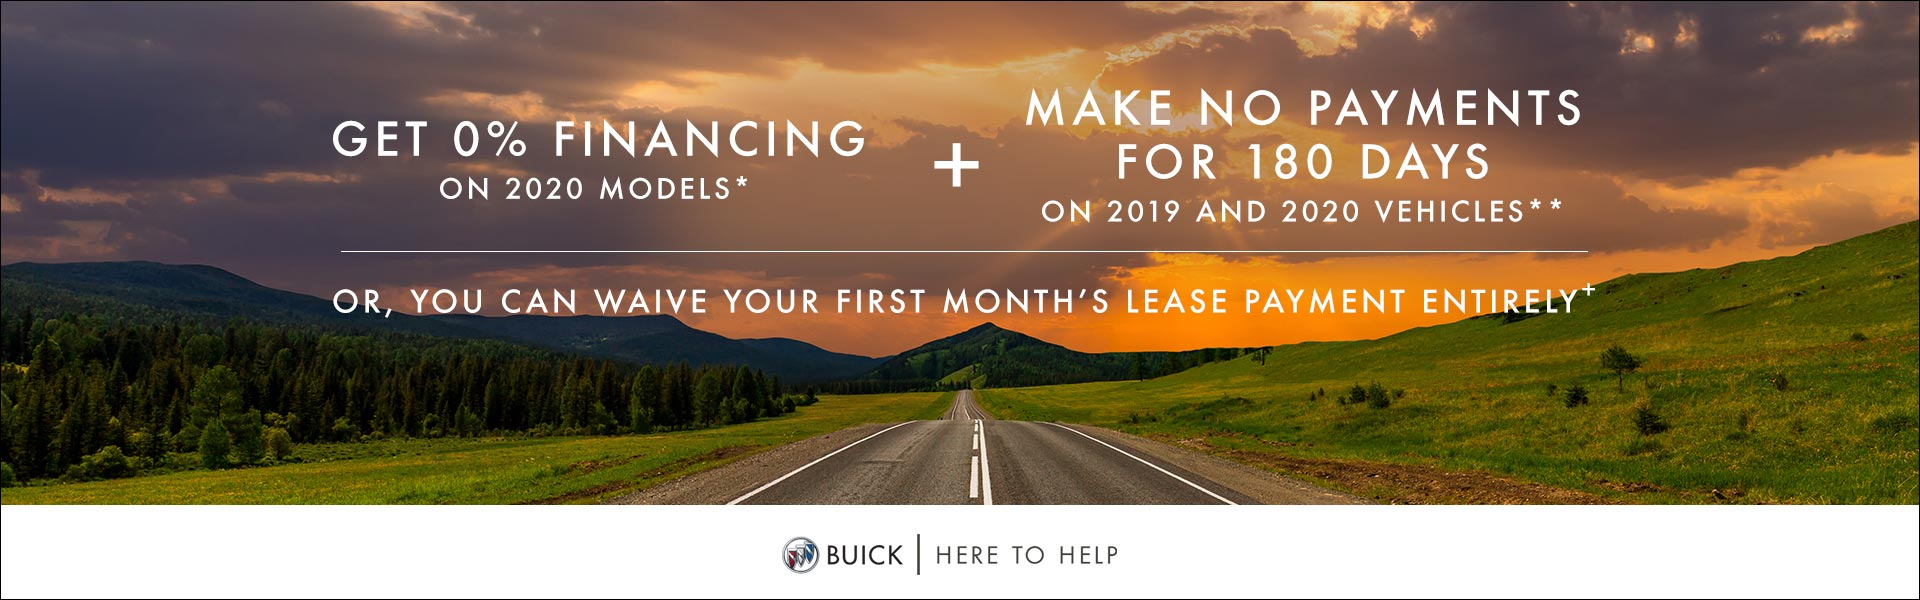 GMCCA - Western - Buick Global